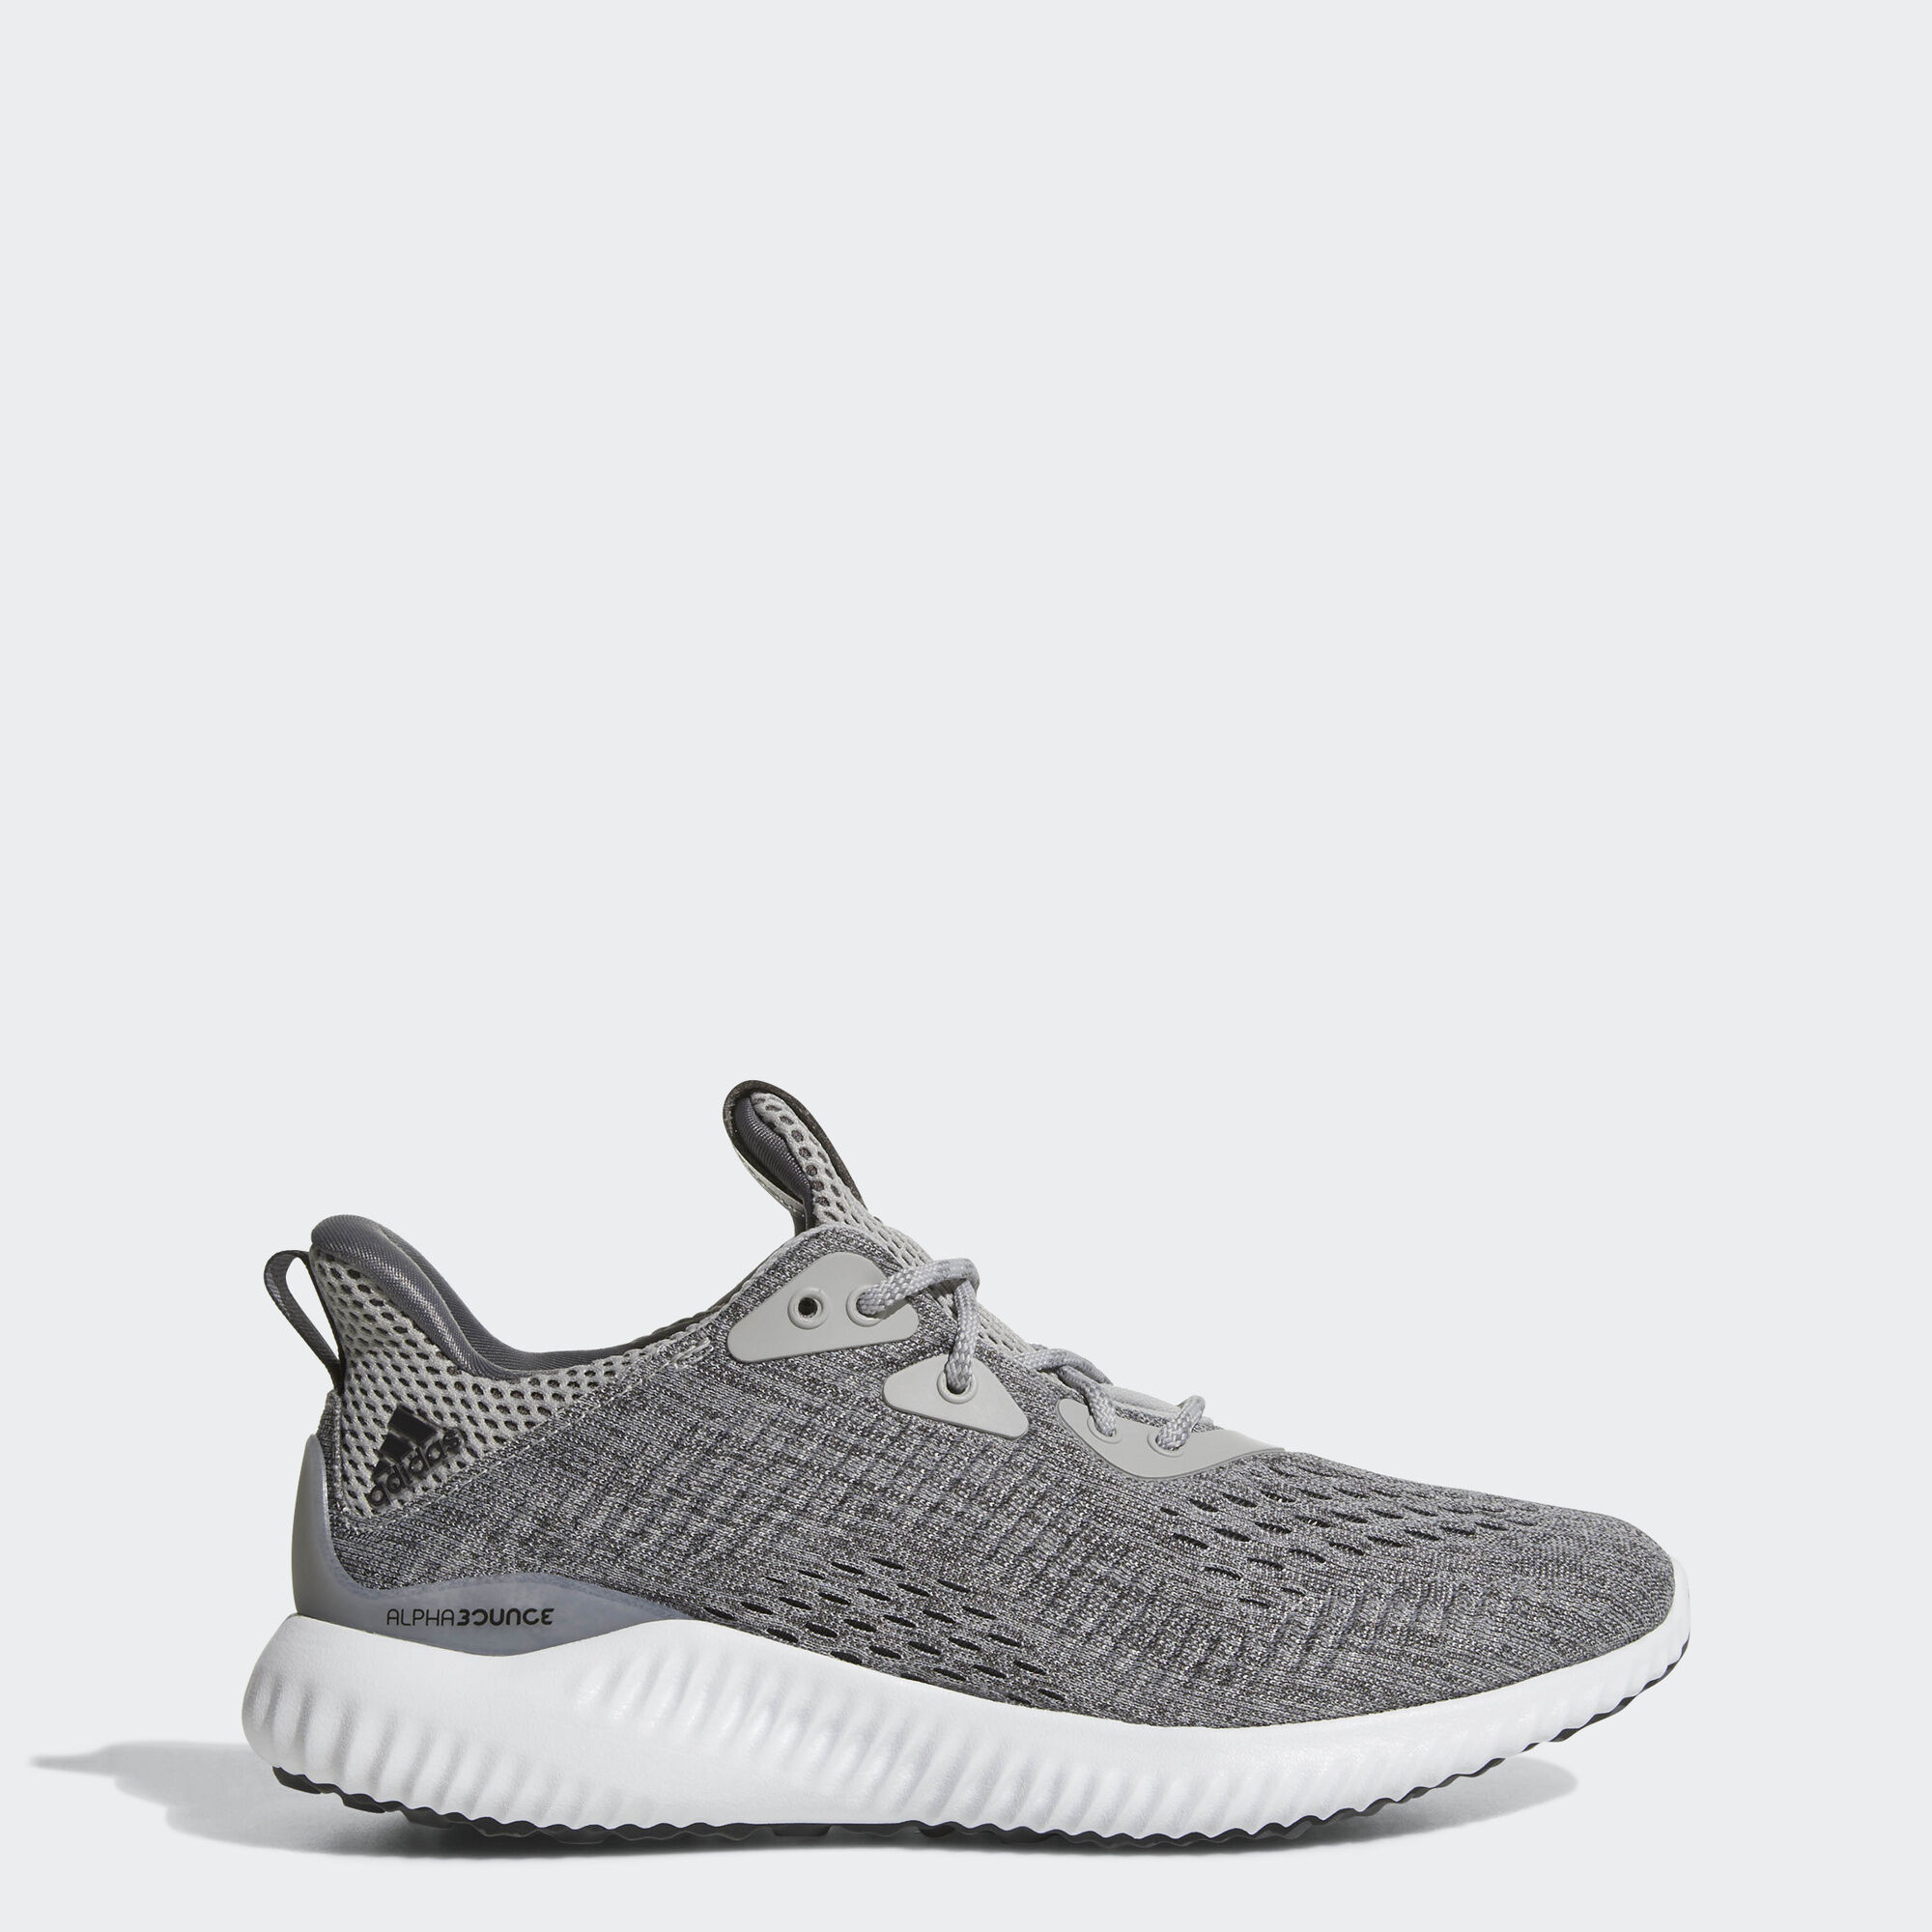 Creative The Shoes Midsole Padding Isnt At The Same Level As The Adidas  Women, The New Version Of The Sneaker Now Comes In A Much Cleaner Nearly Allwhite Version The Womens Design Includes A Touch Of